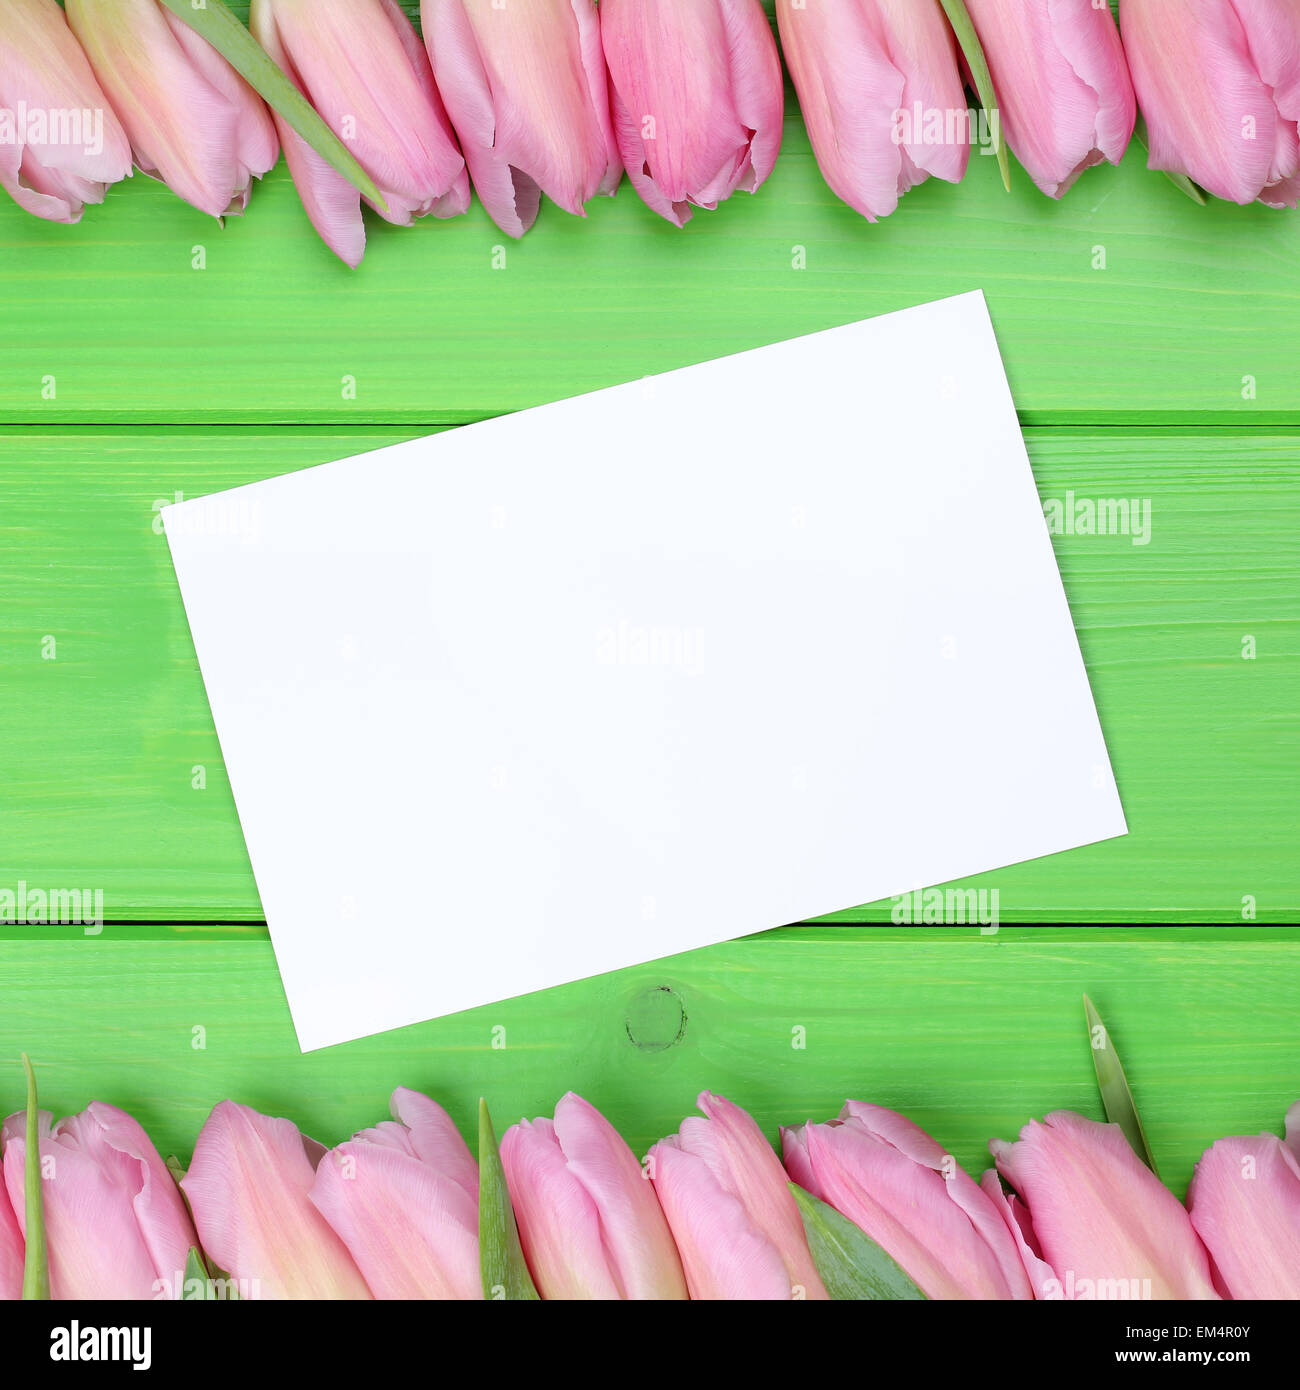 Tulips flowers in spring with greeting card and copyspace for your own text - Stock Image